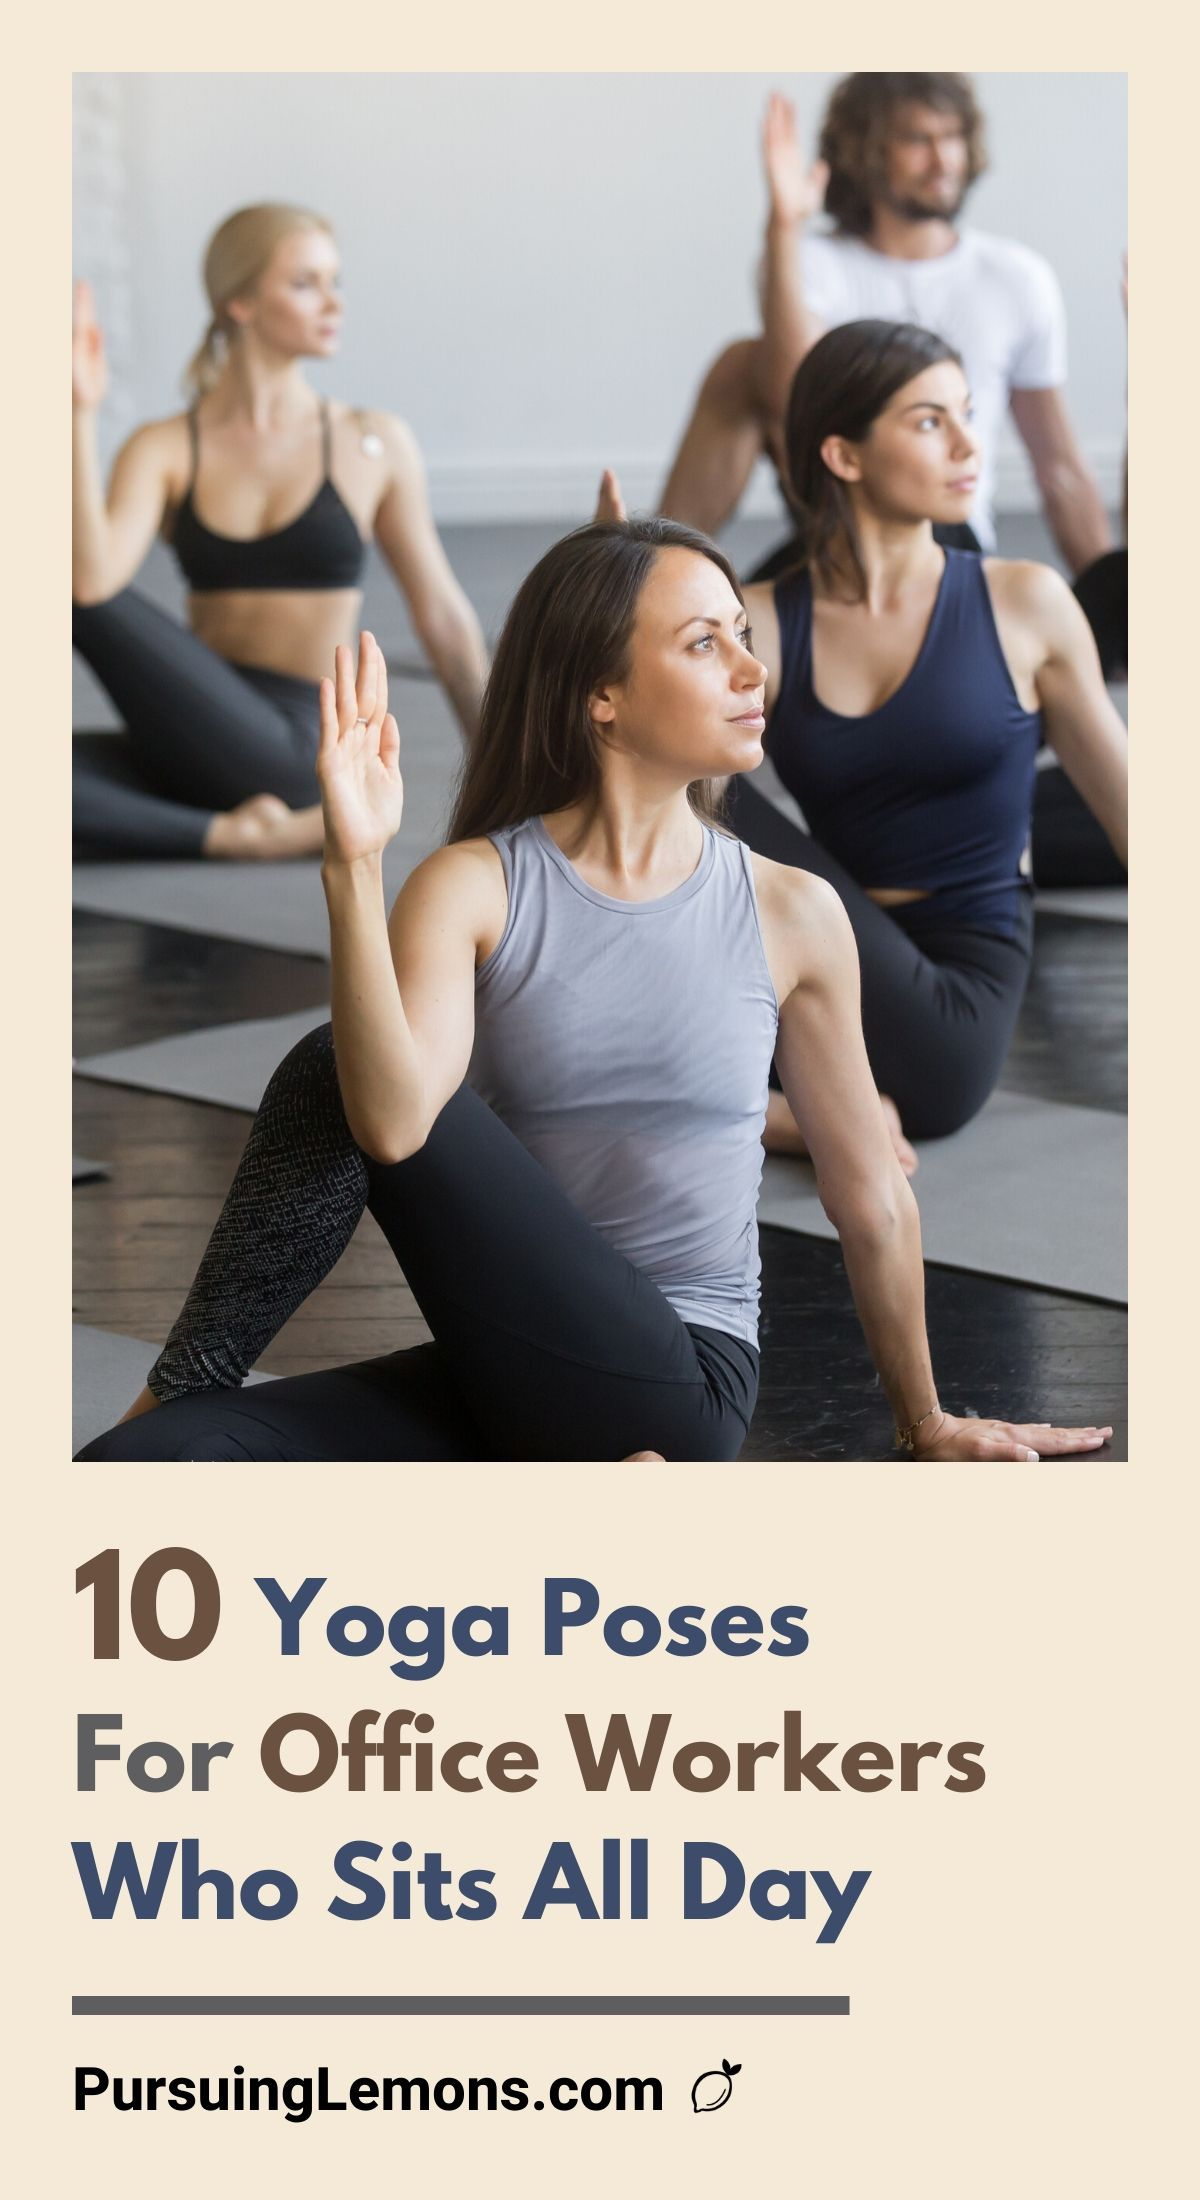 10 Yoga Poses For Office Workers Who Sits All Day